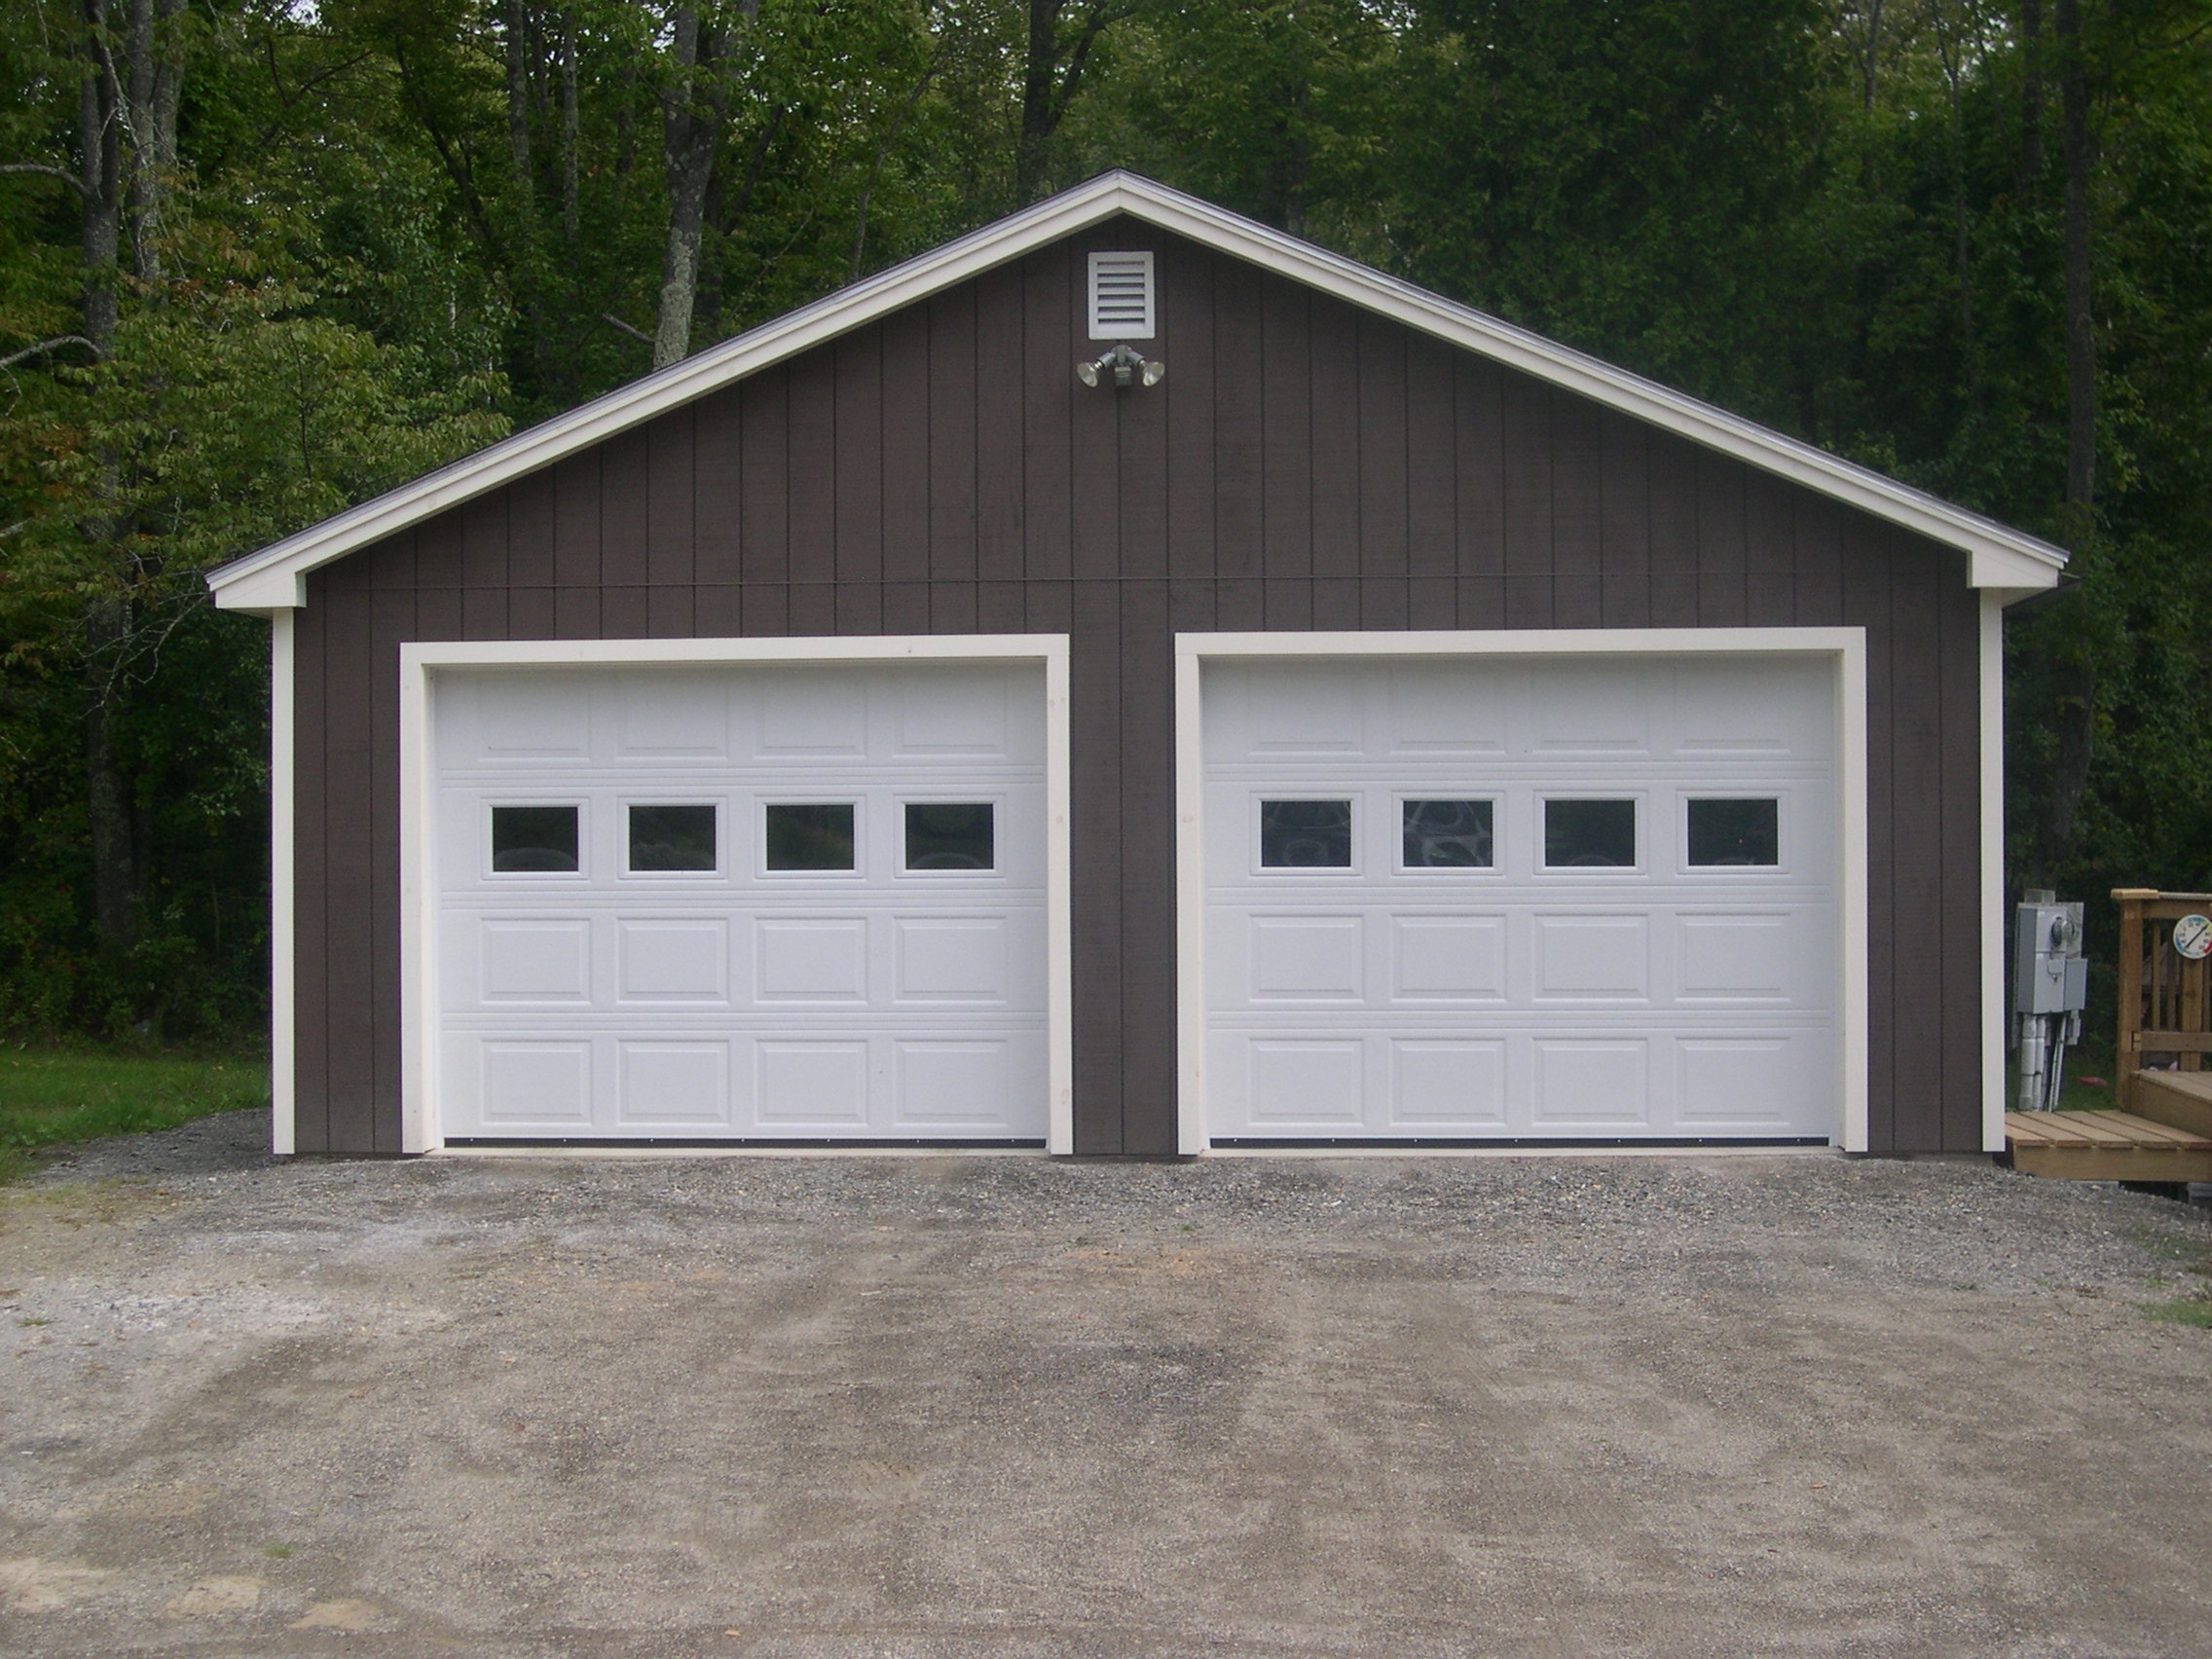 How much to build a garage on side of the house uk for Two car garage with loft cost